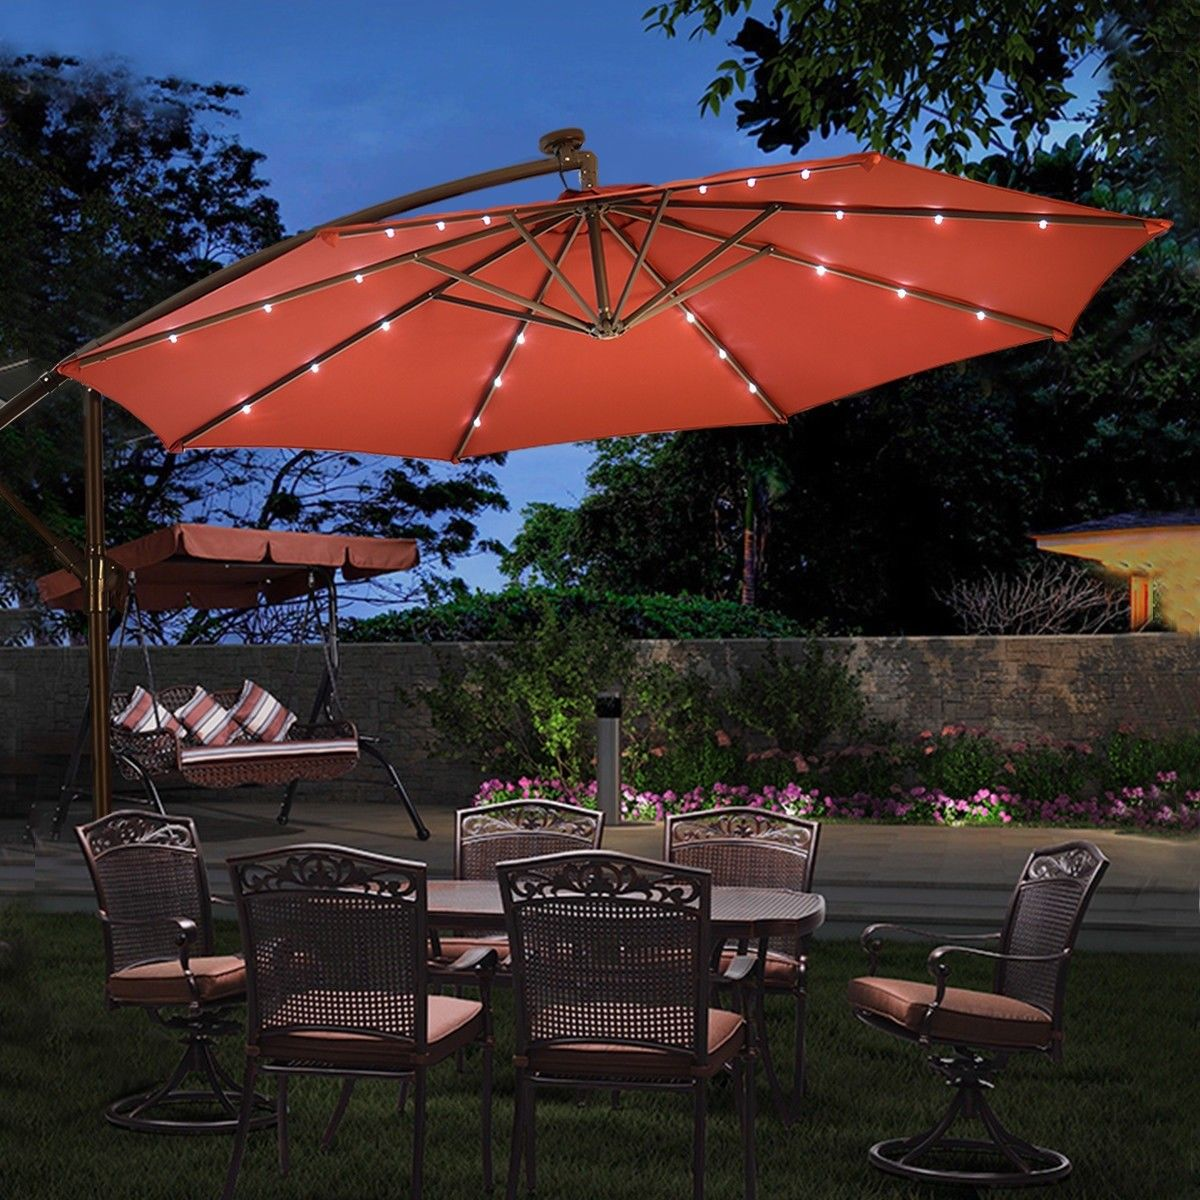 10 Patio Hanging Umbrella Sun Shade With Solar Led Lights Patio Sun Shades Patio Shade Patio Umbrella